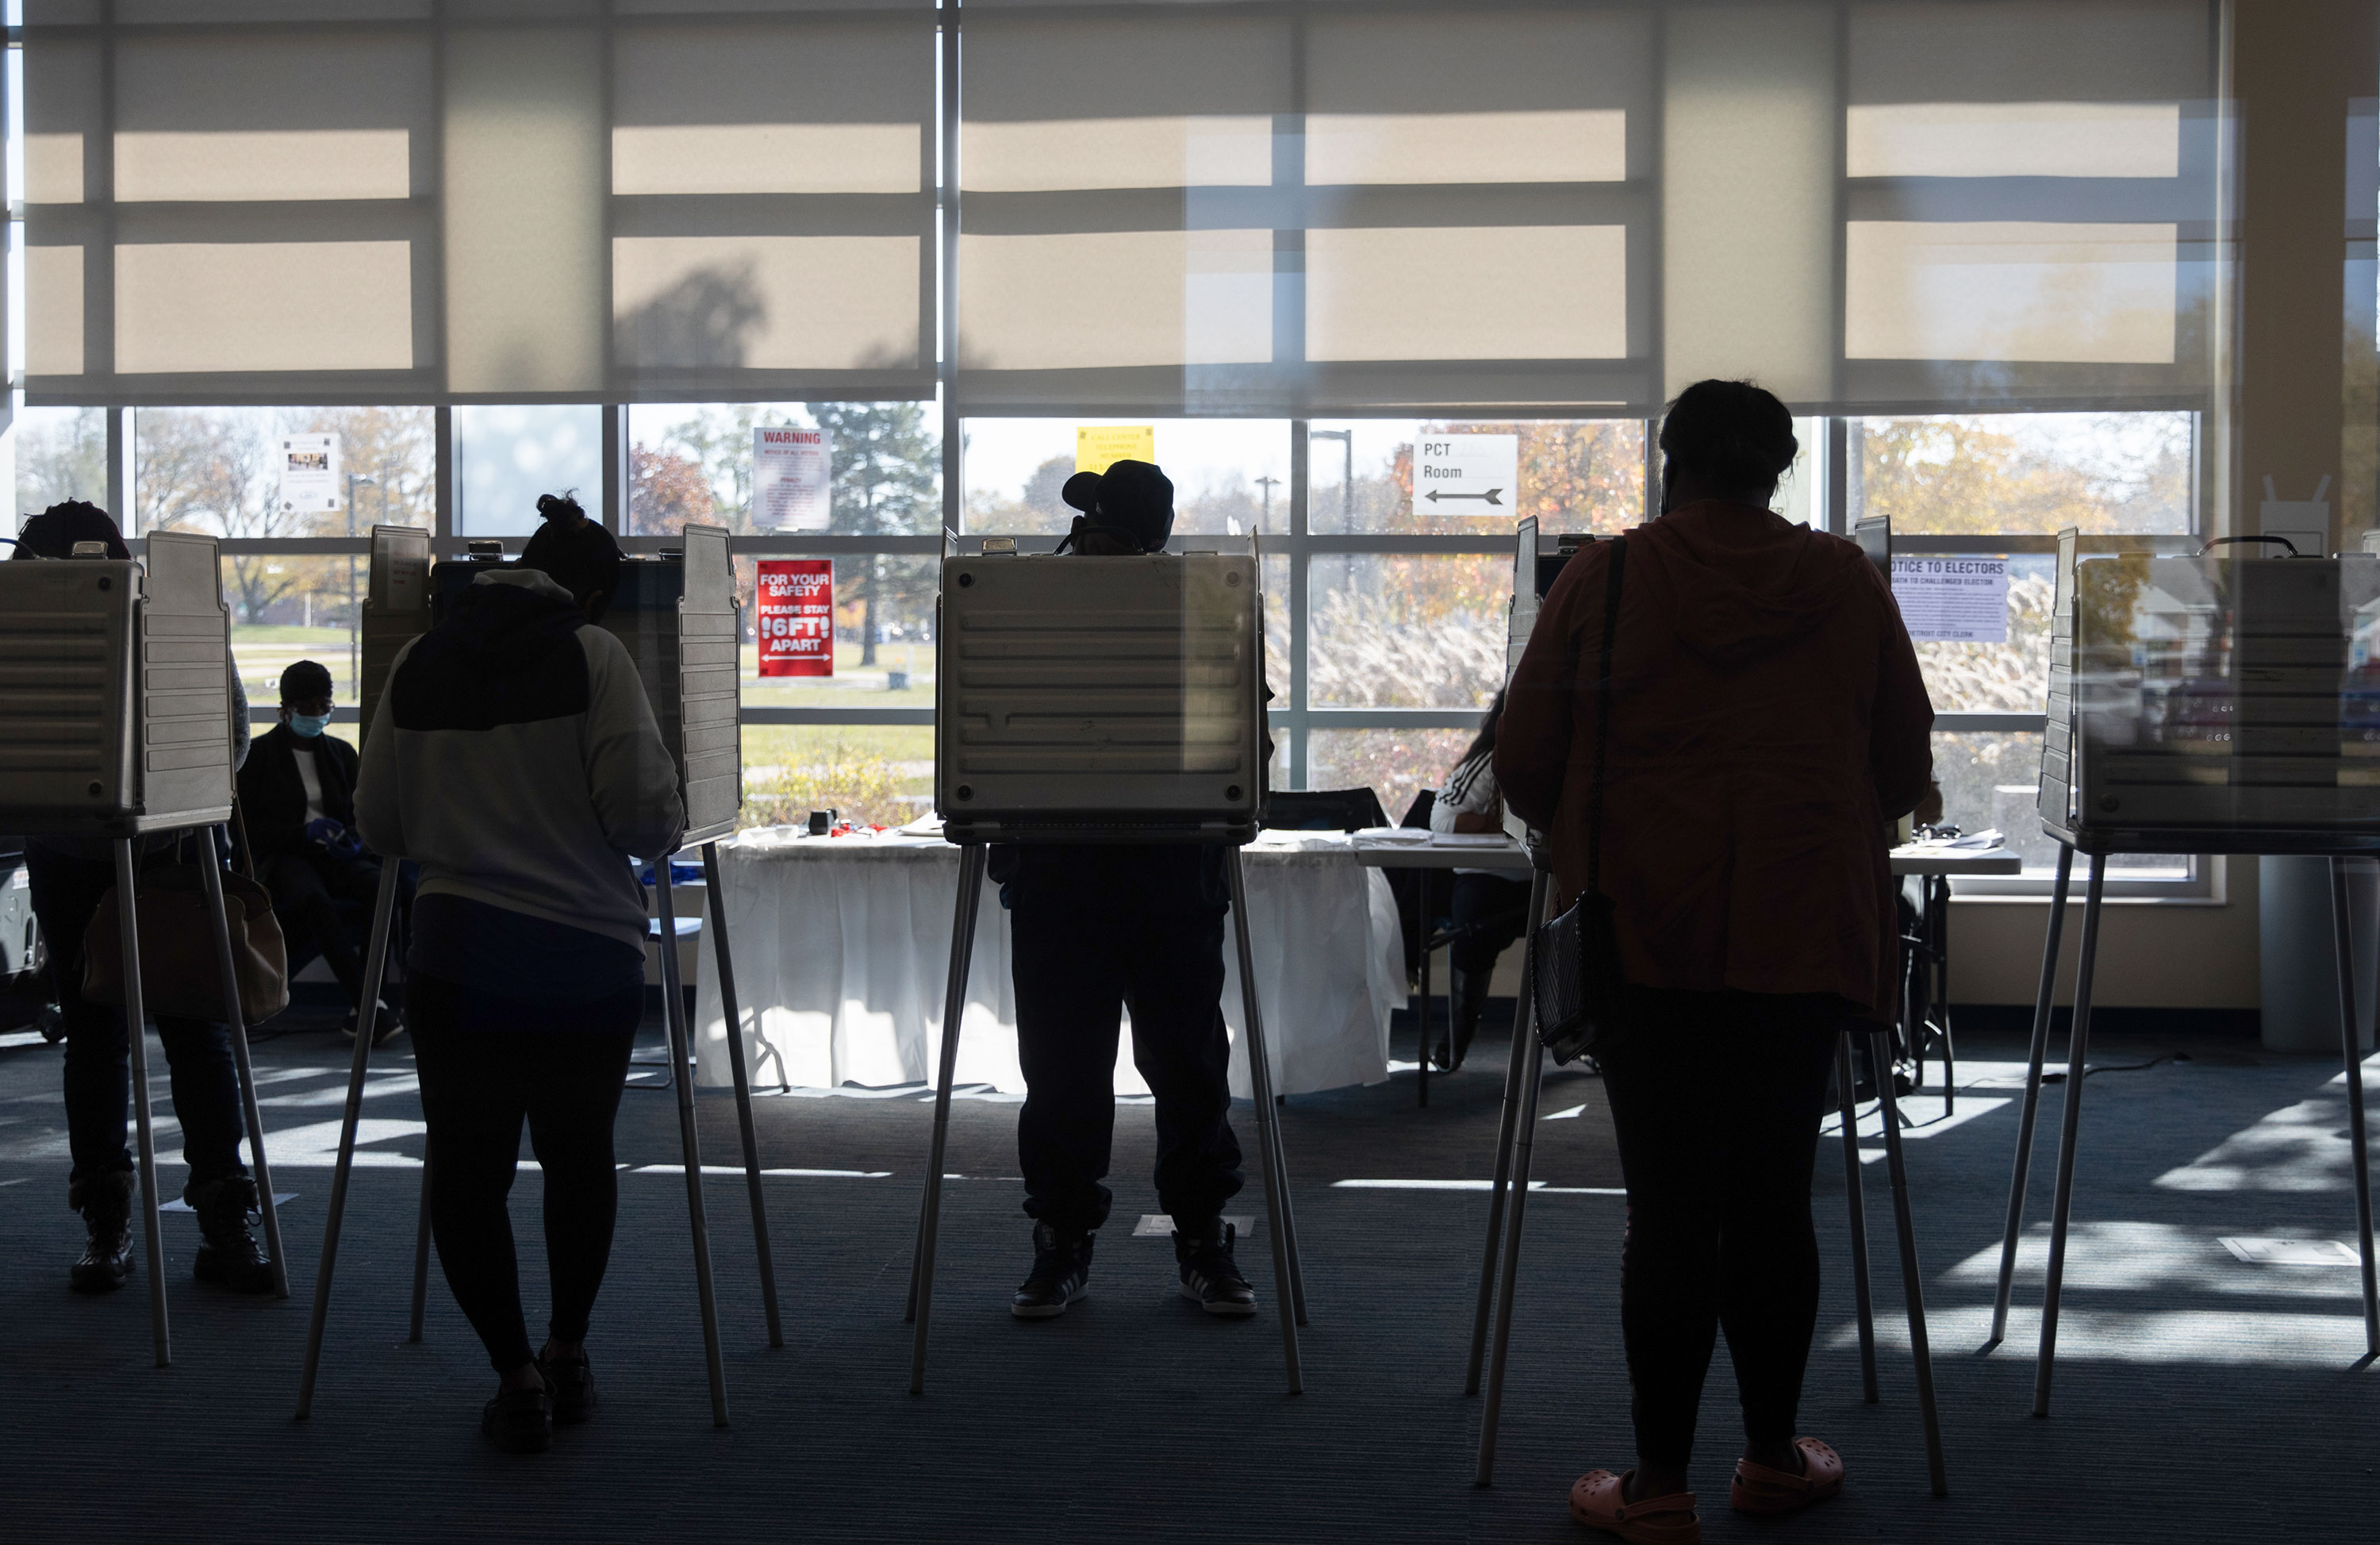 Voters cast ballots at a polling location in Detroit, Michigan, on Tuesday, November 3.